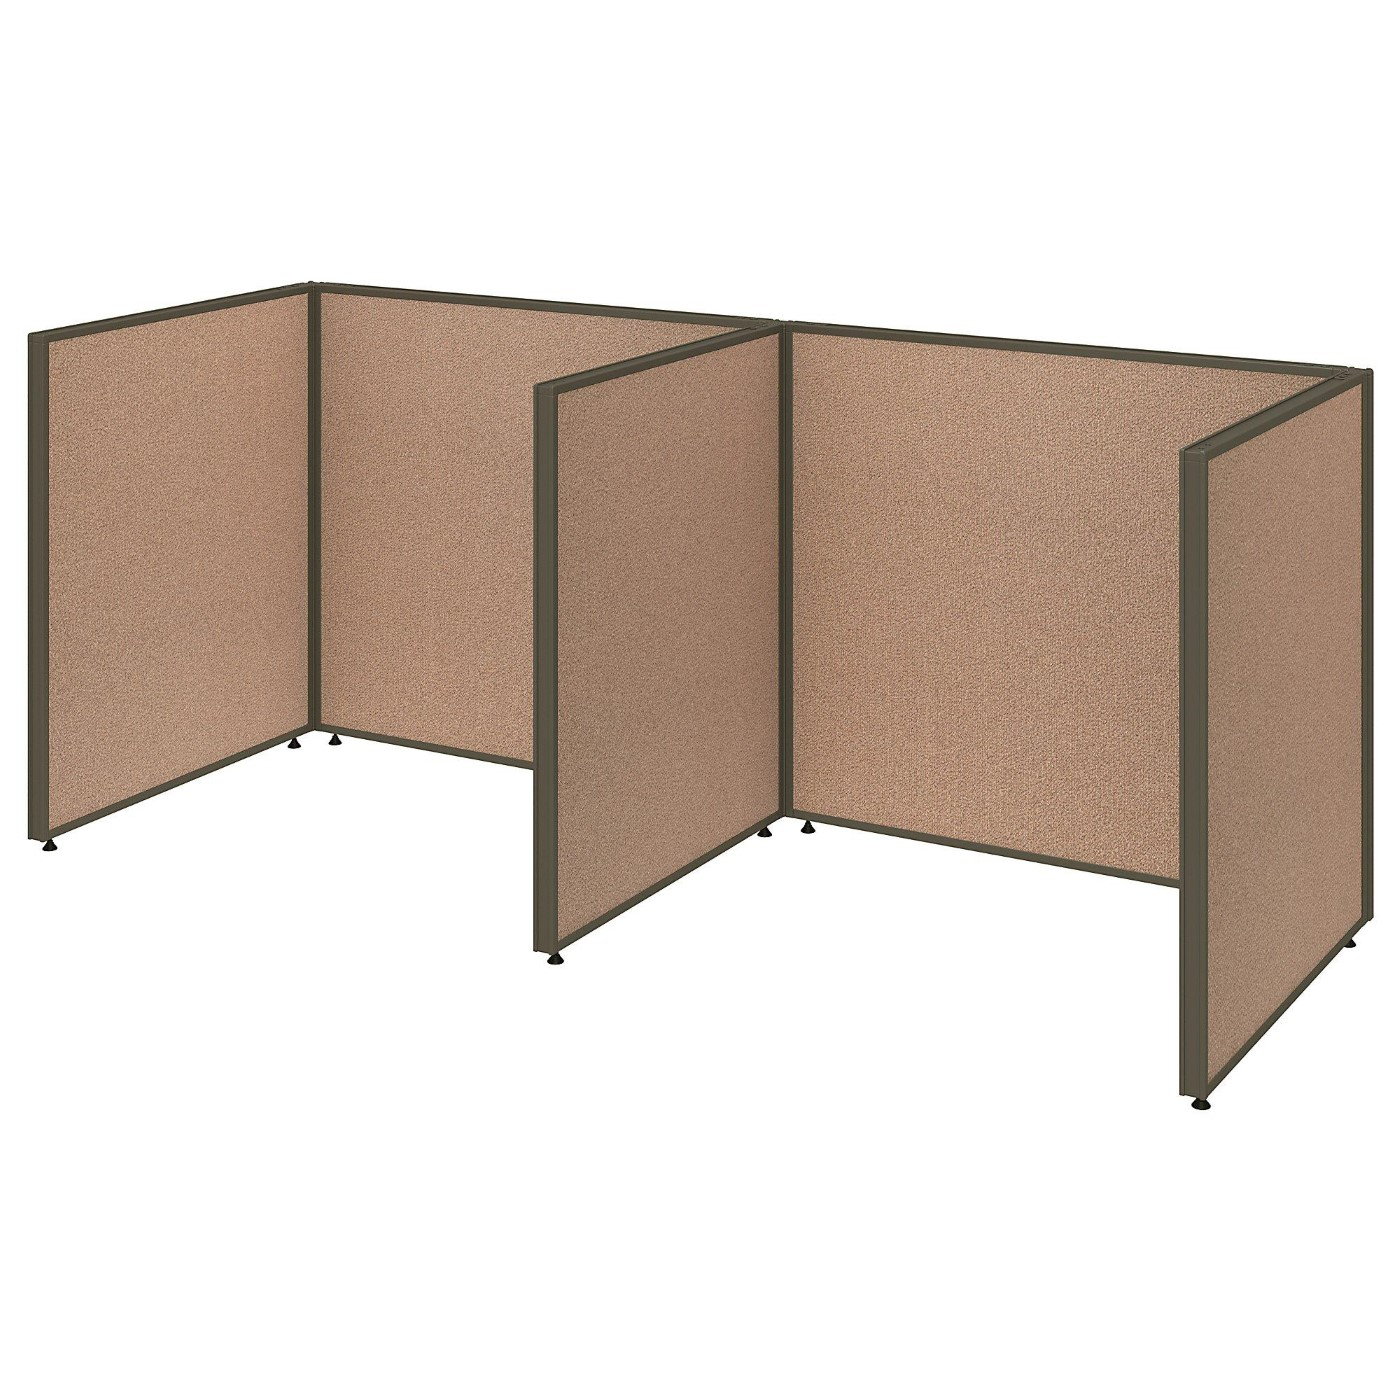 <font color=#c60><b>BUSH BUSINESS FURNITURE PROPANELS 2 PERSON OPEN CUBICLE OFFICE. FREE SHIPPING</font></b>